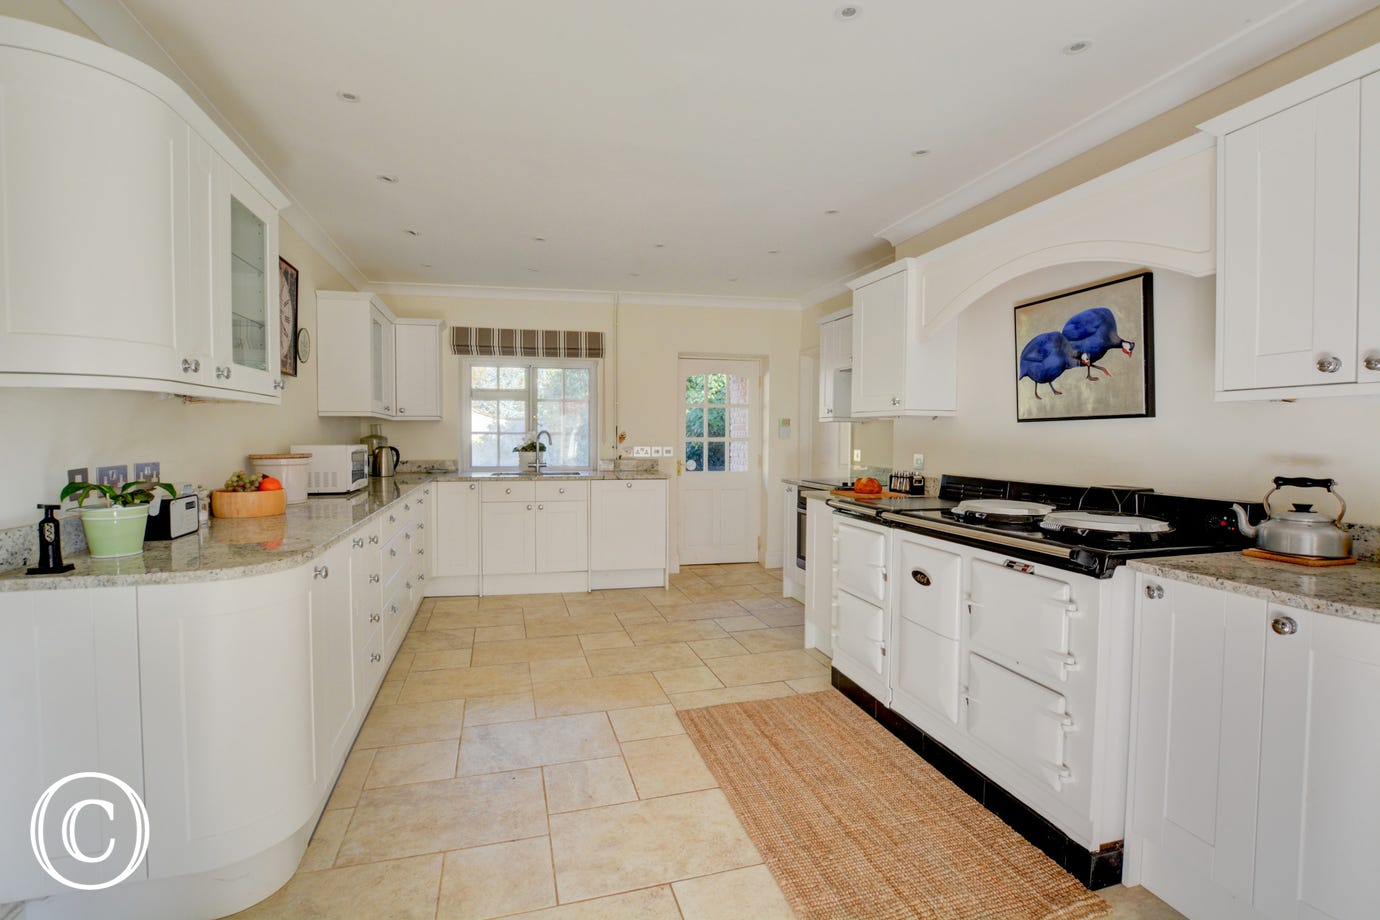 Modern, white kitchen with Aga